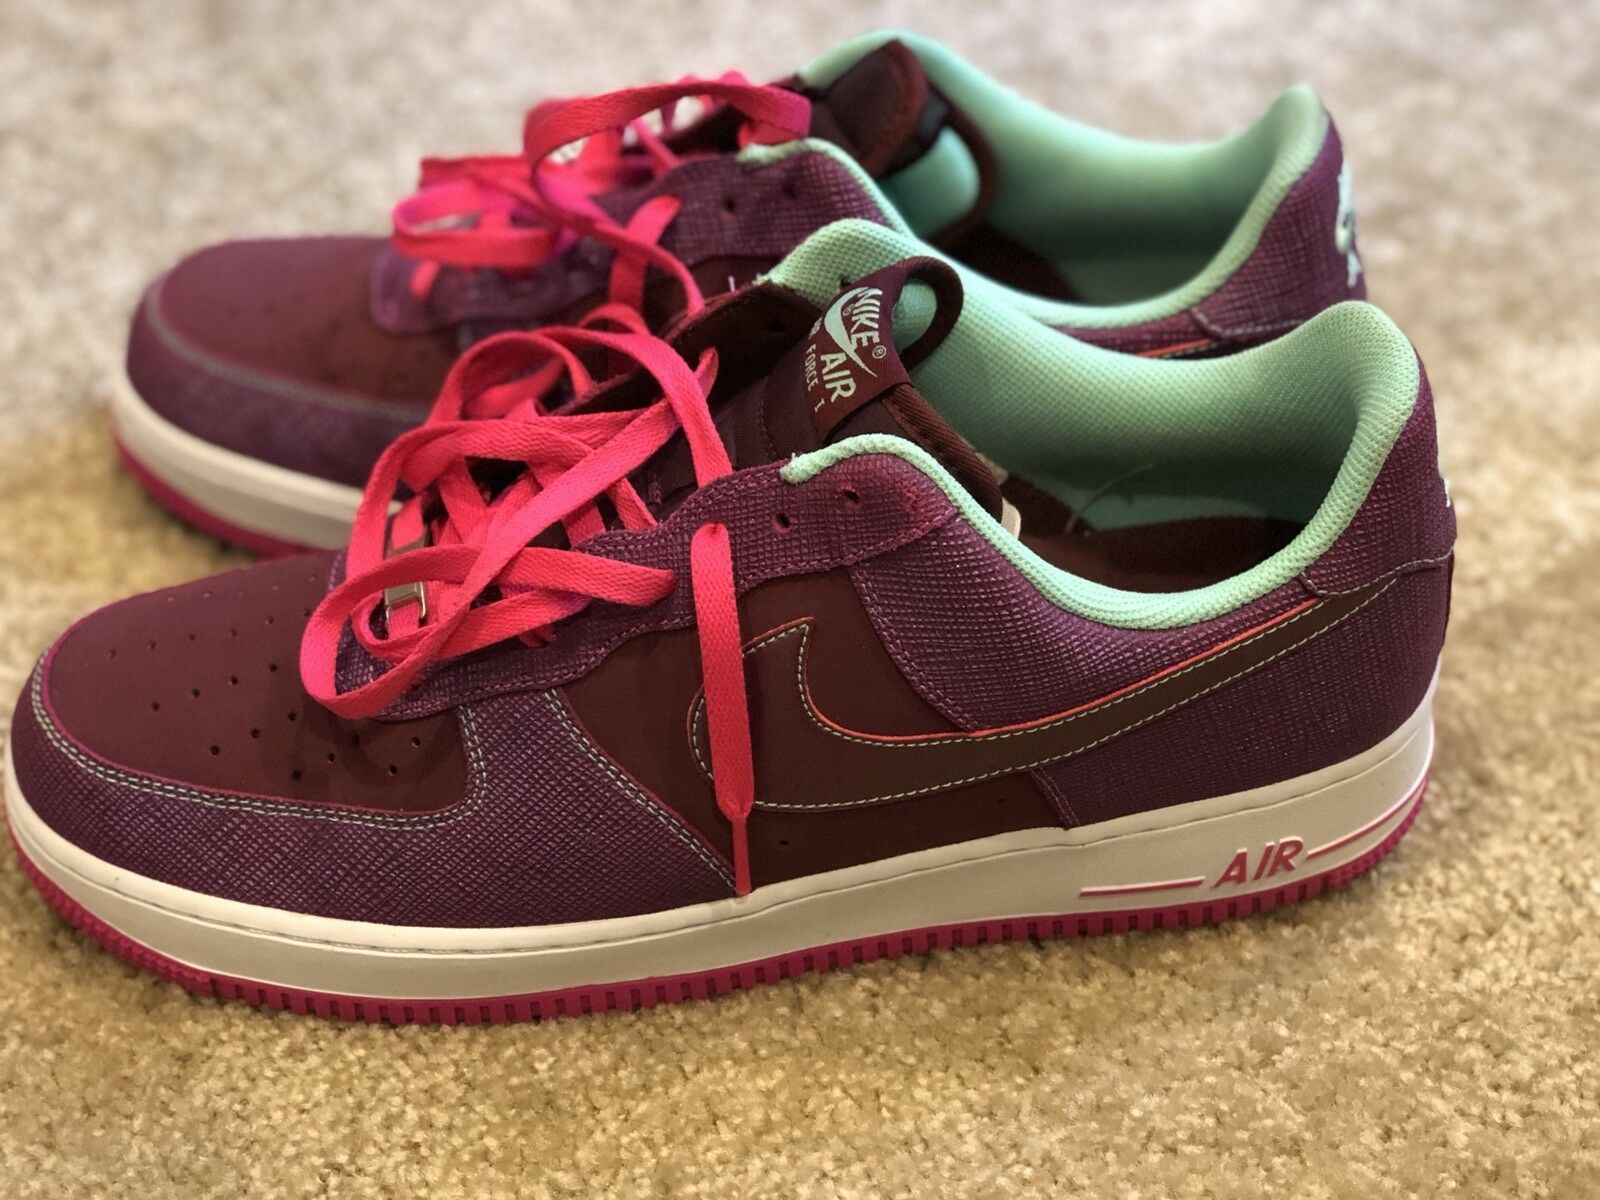 Nike Air Force One  Cheap and fashionable